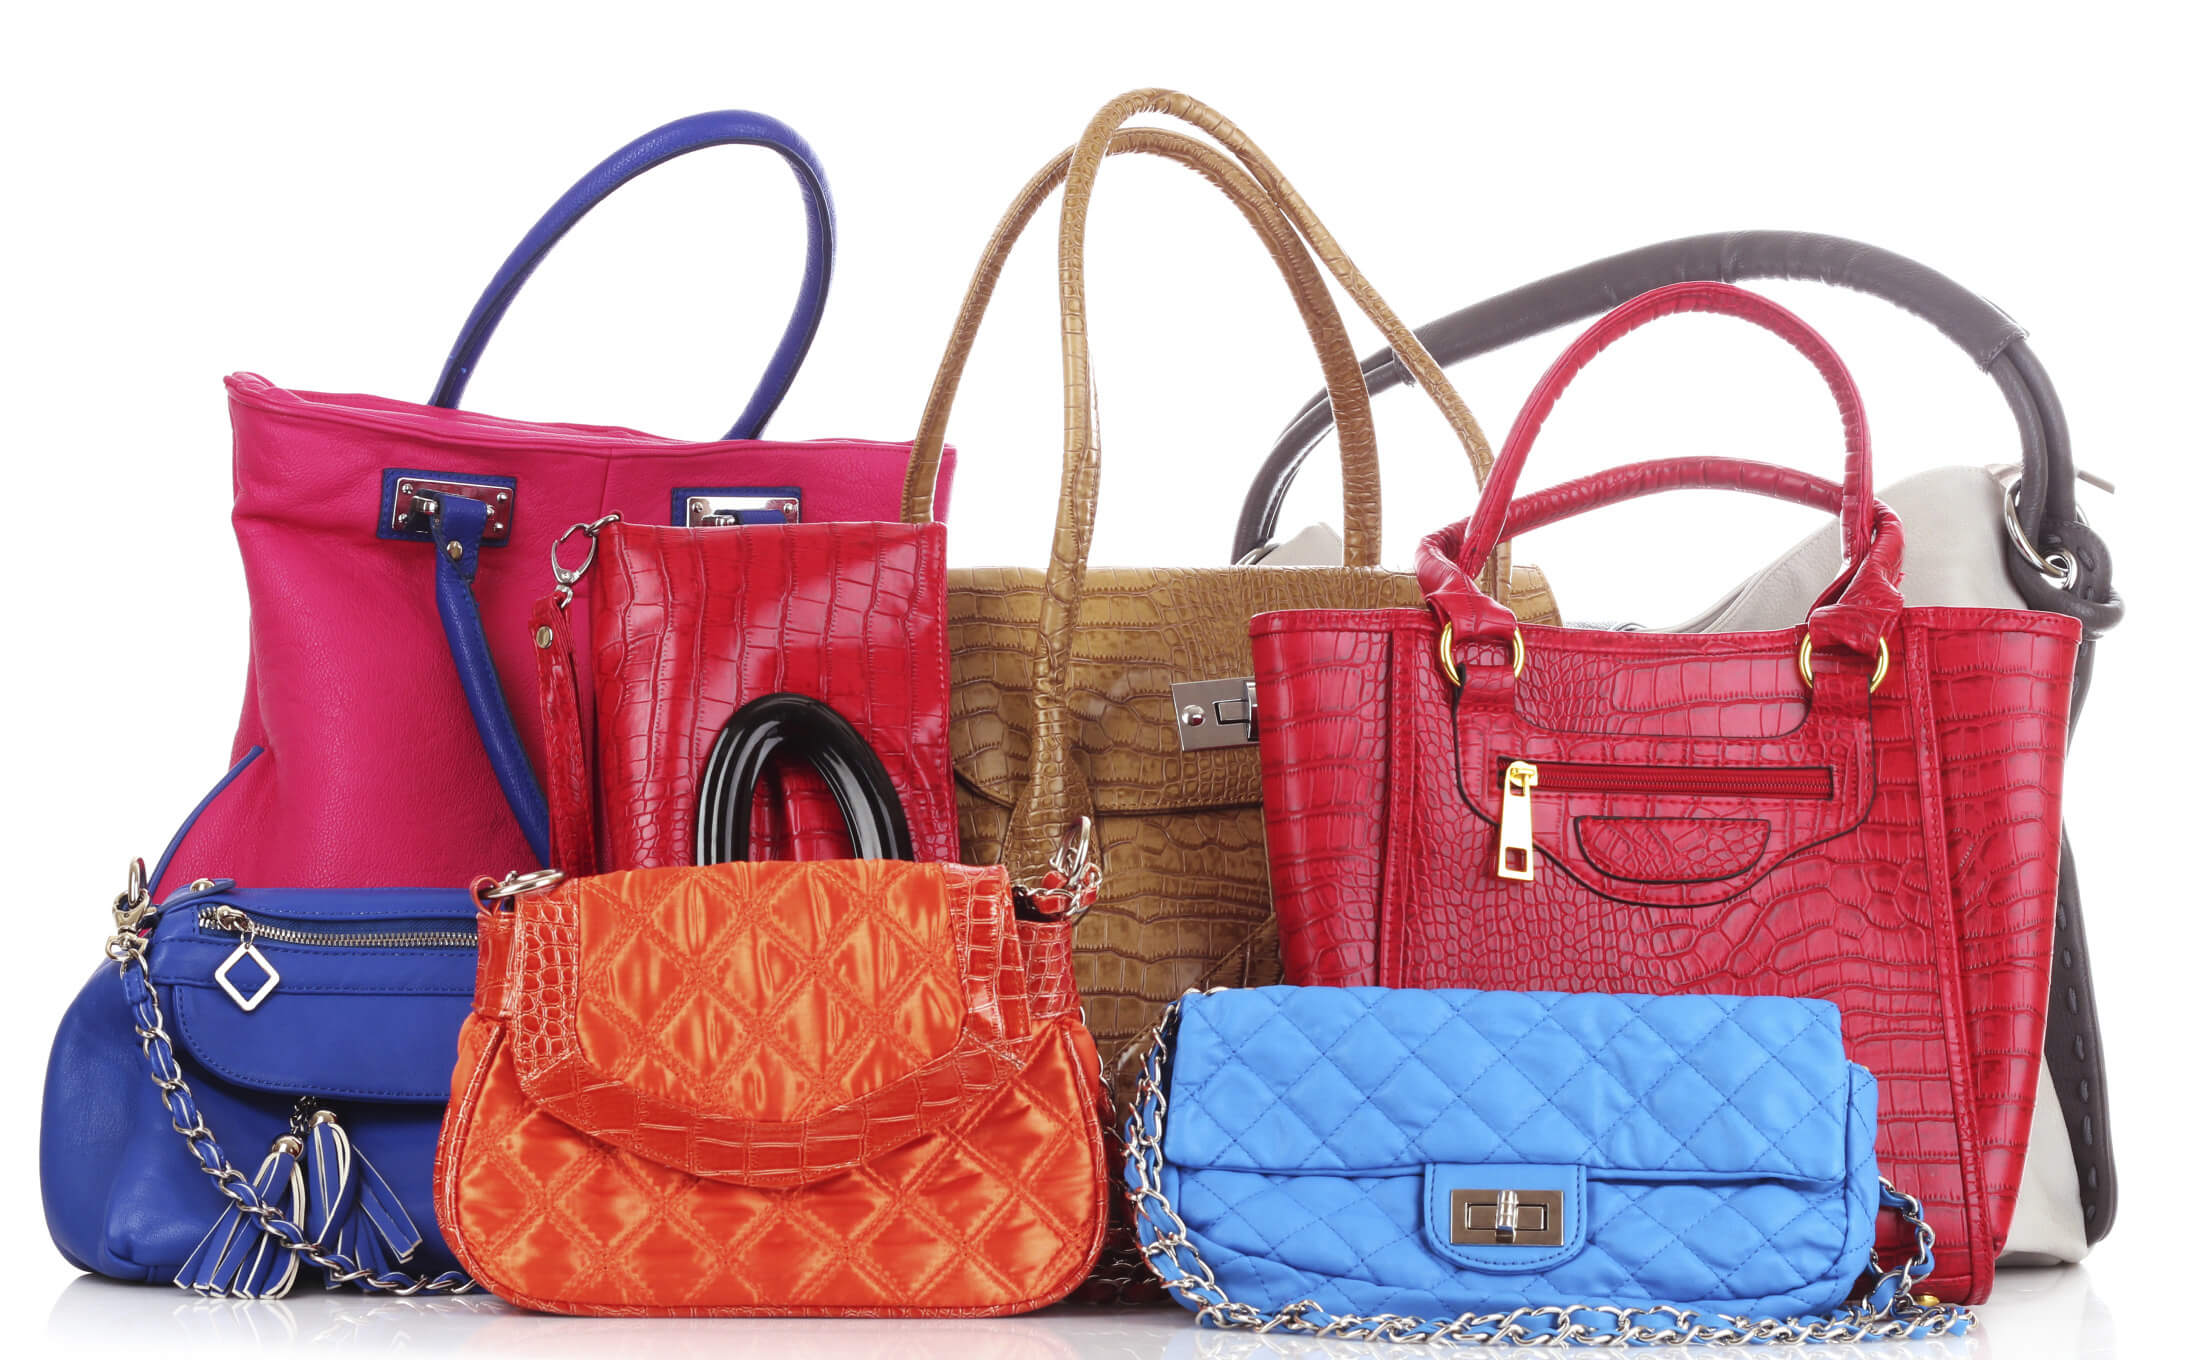 It's in the Bag - %color %size Handbags for Women. A handbag isn't just a way to transport your essentials. It's a way to compliment and elevate your look.